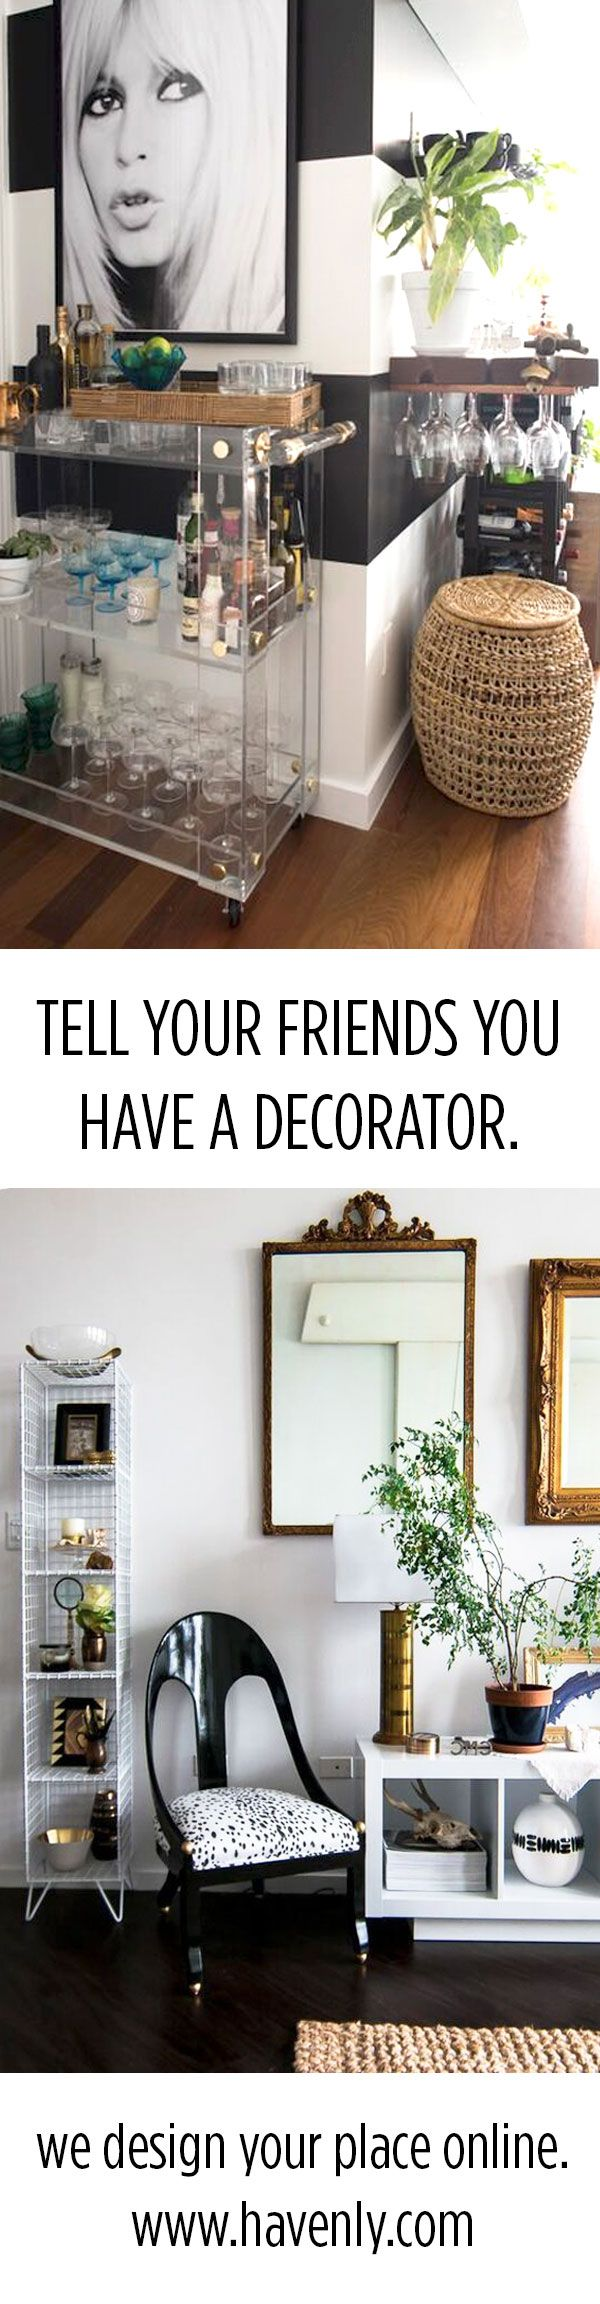 Go on, tell your friends you have a decorator. Professional interior design, for only $199. Your time, your space, your budget. Get started today.